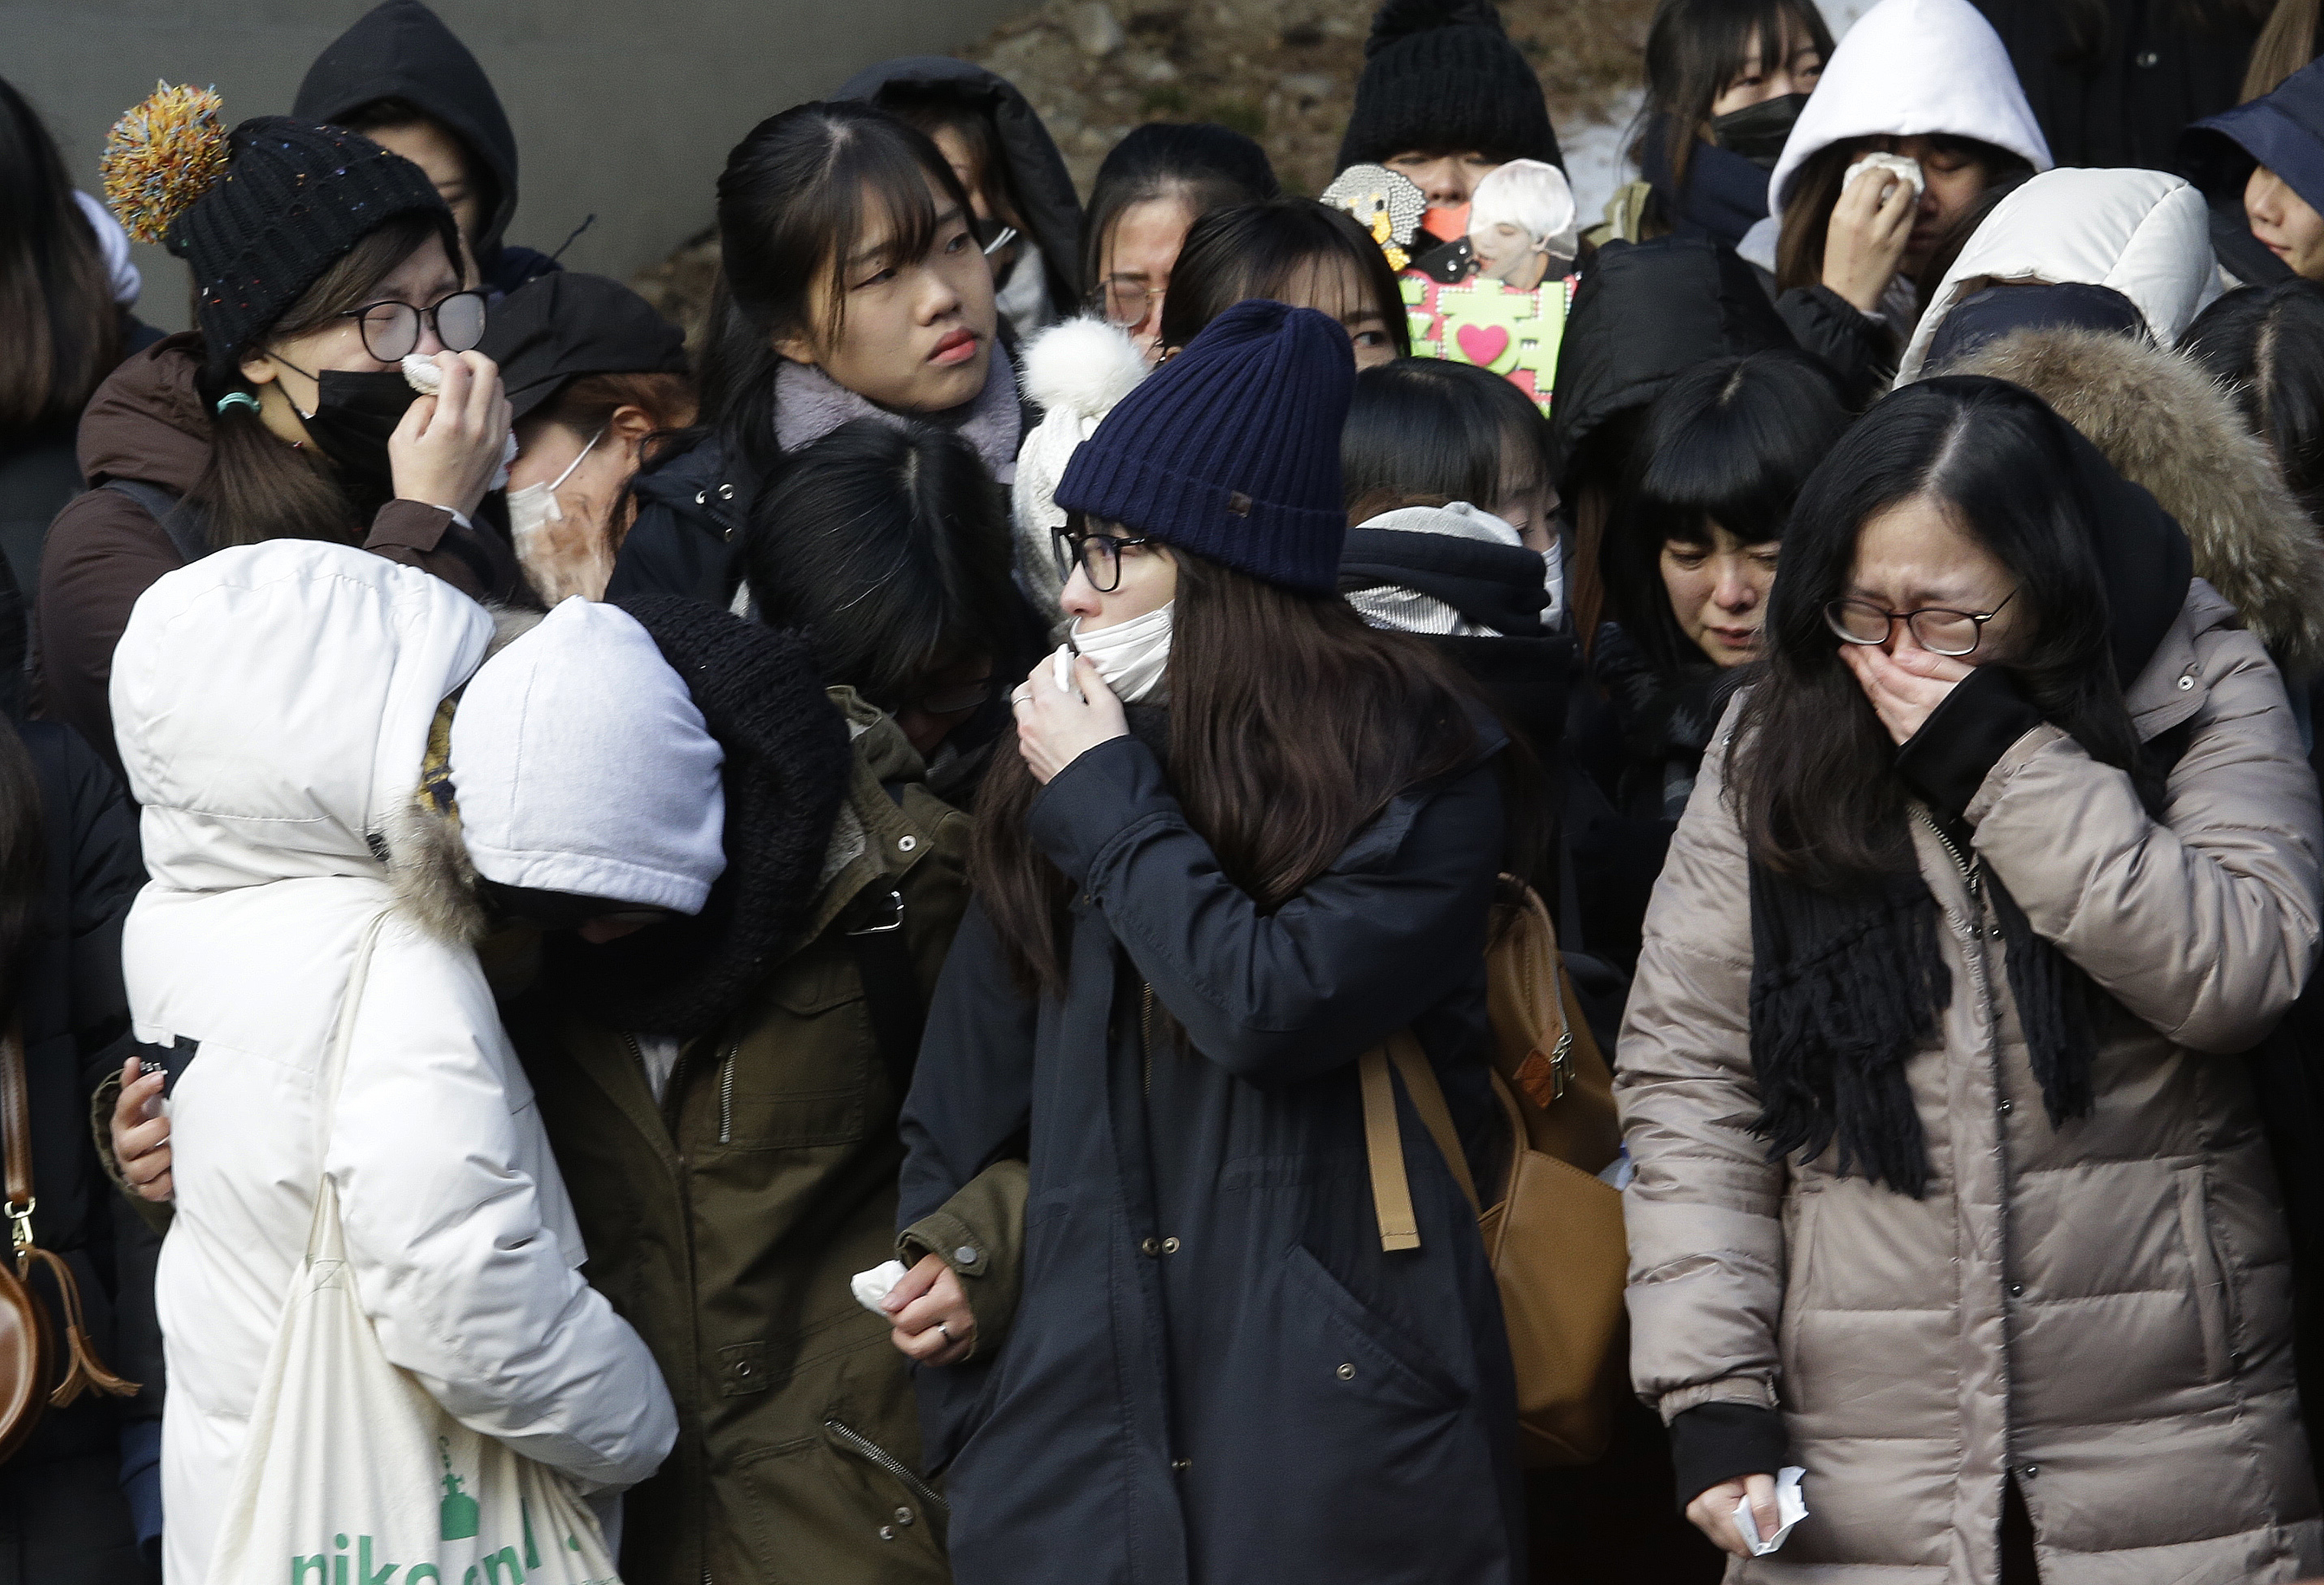 Fans react during the funeral of late South Korean singer Kim Jong-hyun, better known by the stage name Jonghyun, a member of South Korean K-pop group SHINee, in Seoul, South Korea on Dec. 21, 2017.